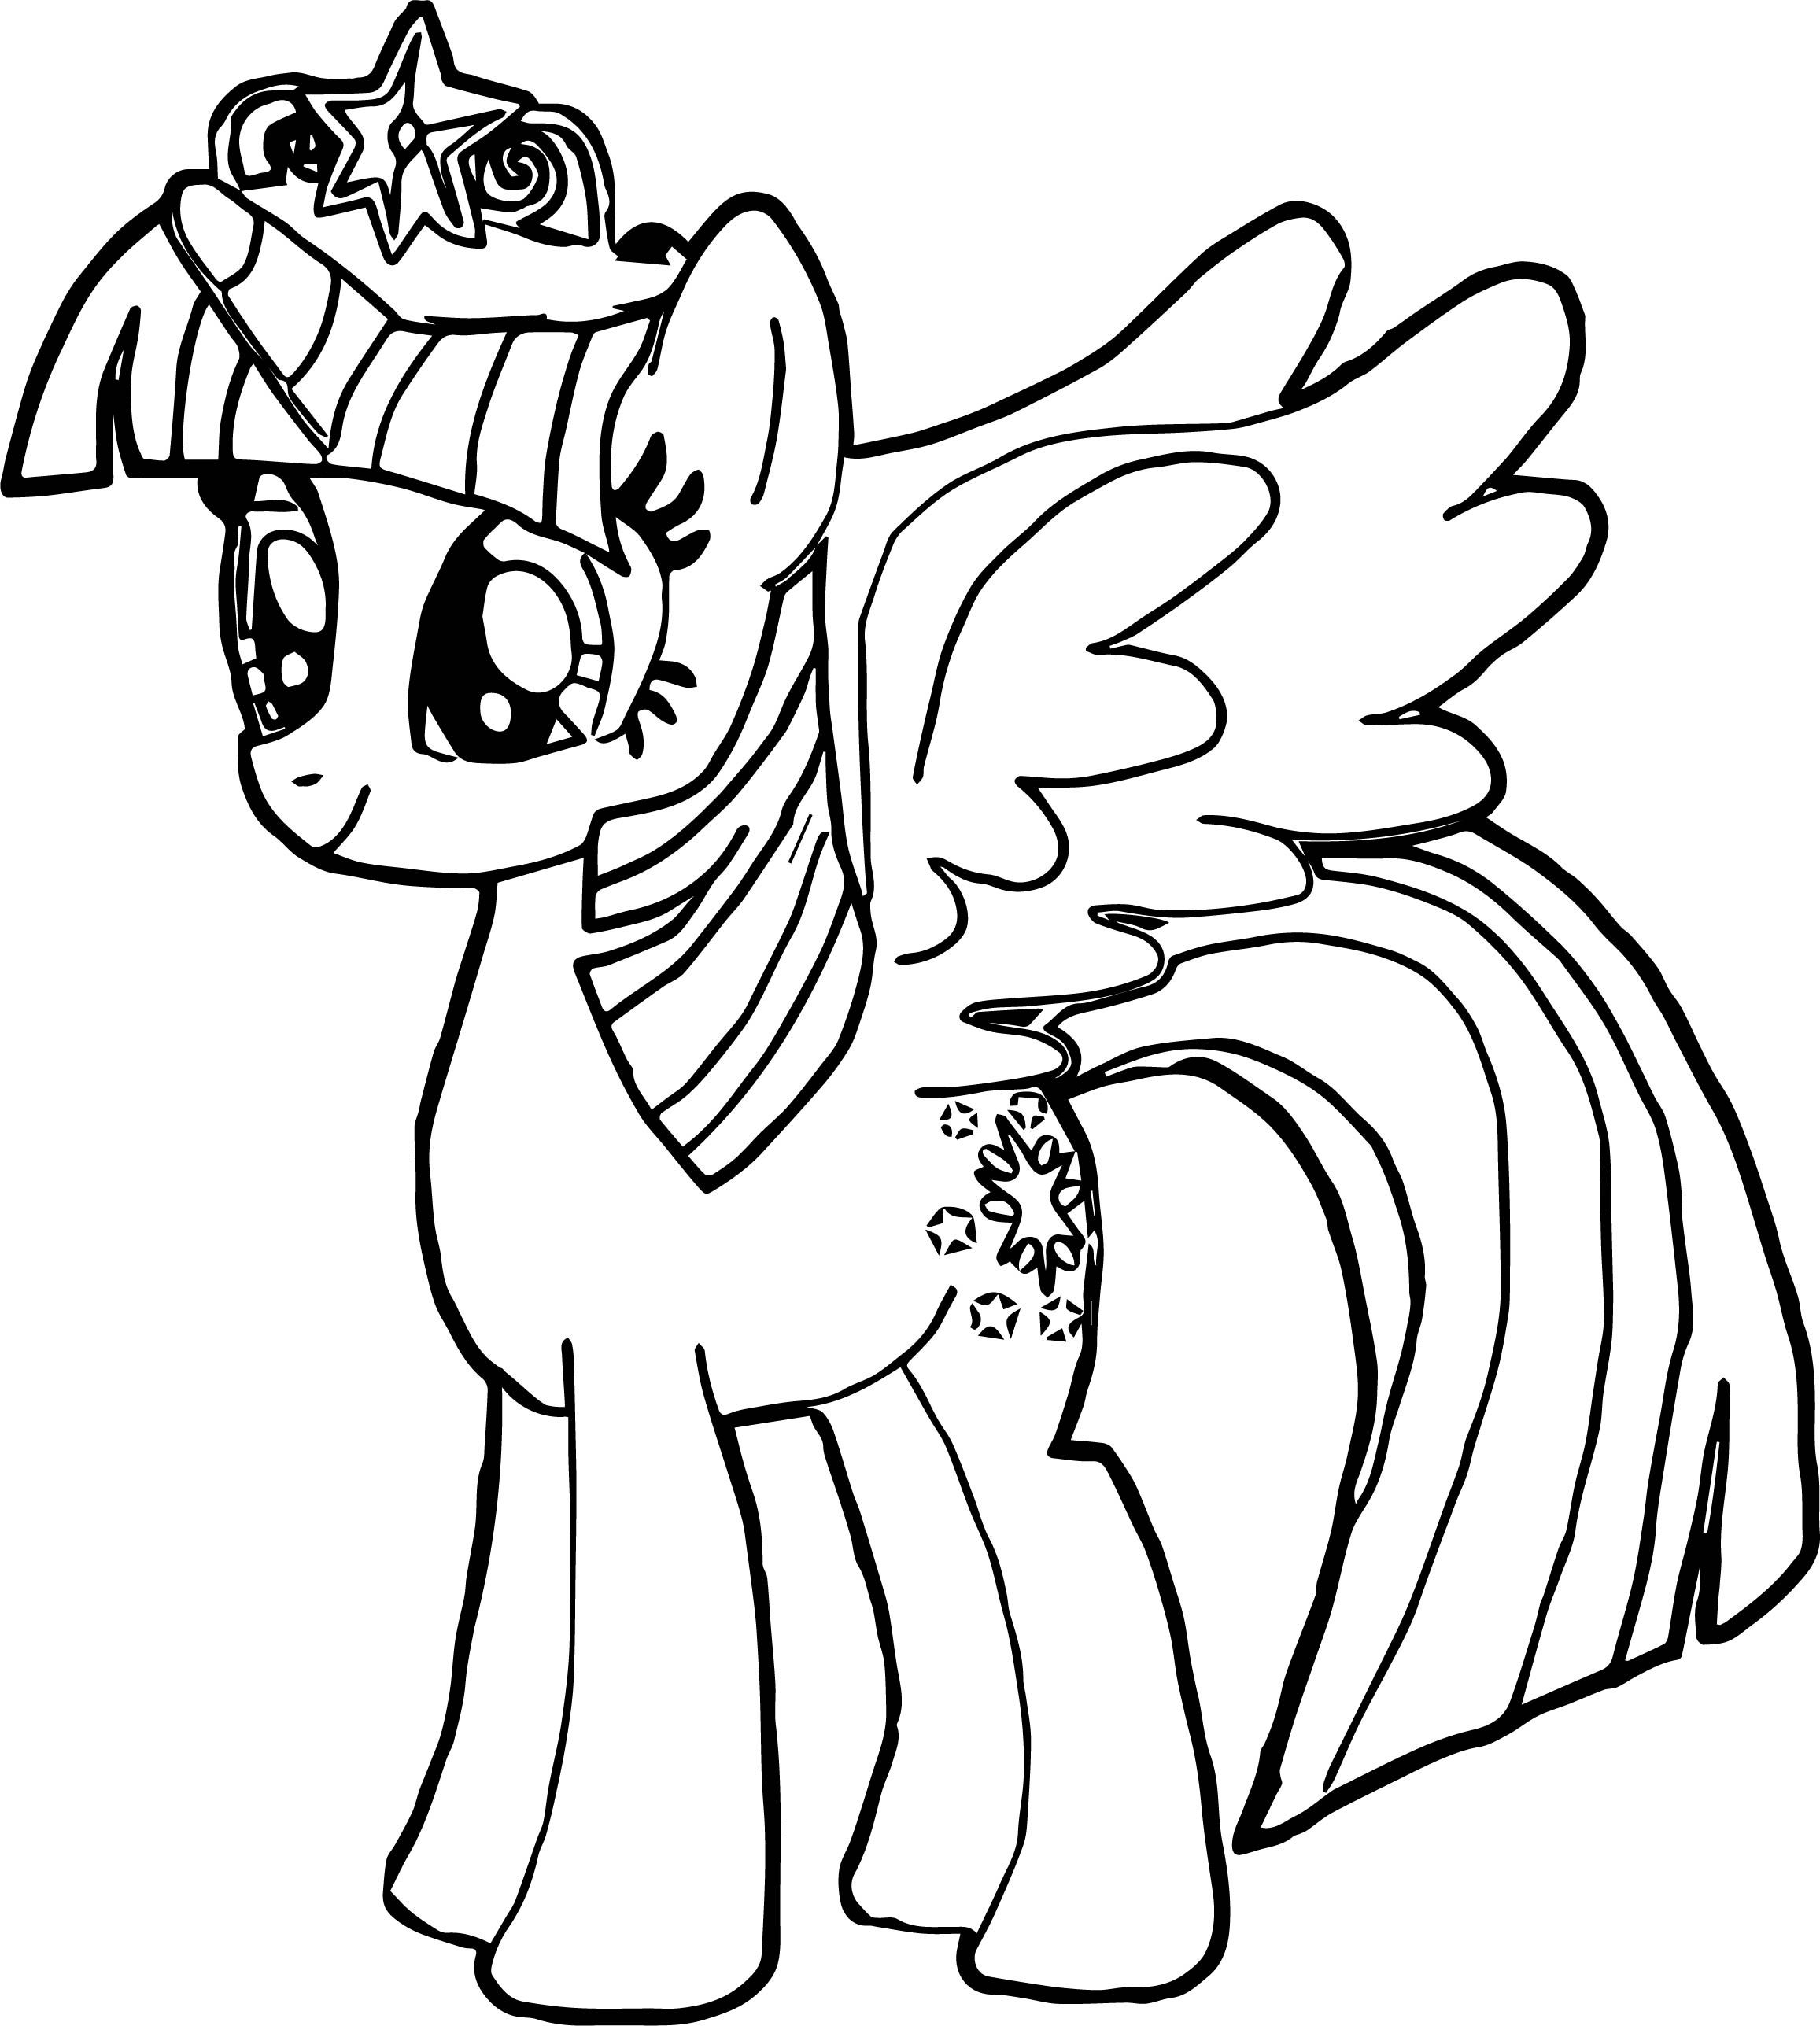 Nice New Princess Twilight Sparkle Coloring Page My Little Pony Coloring My Little Pony Twilight Princess Twilight Sparkle